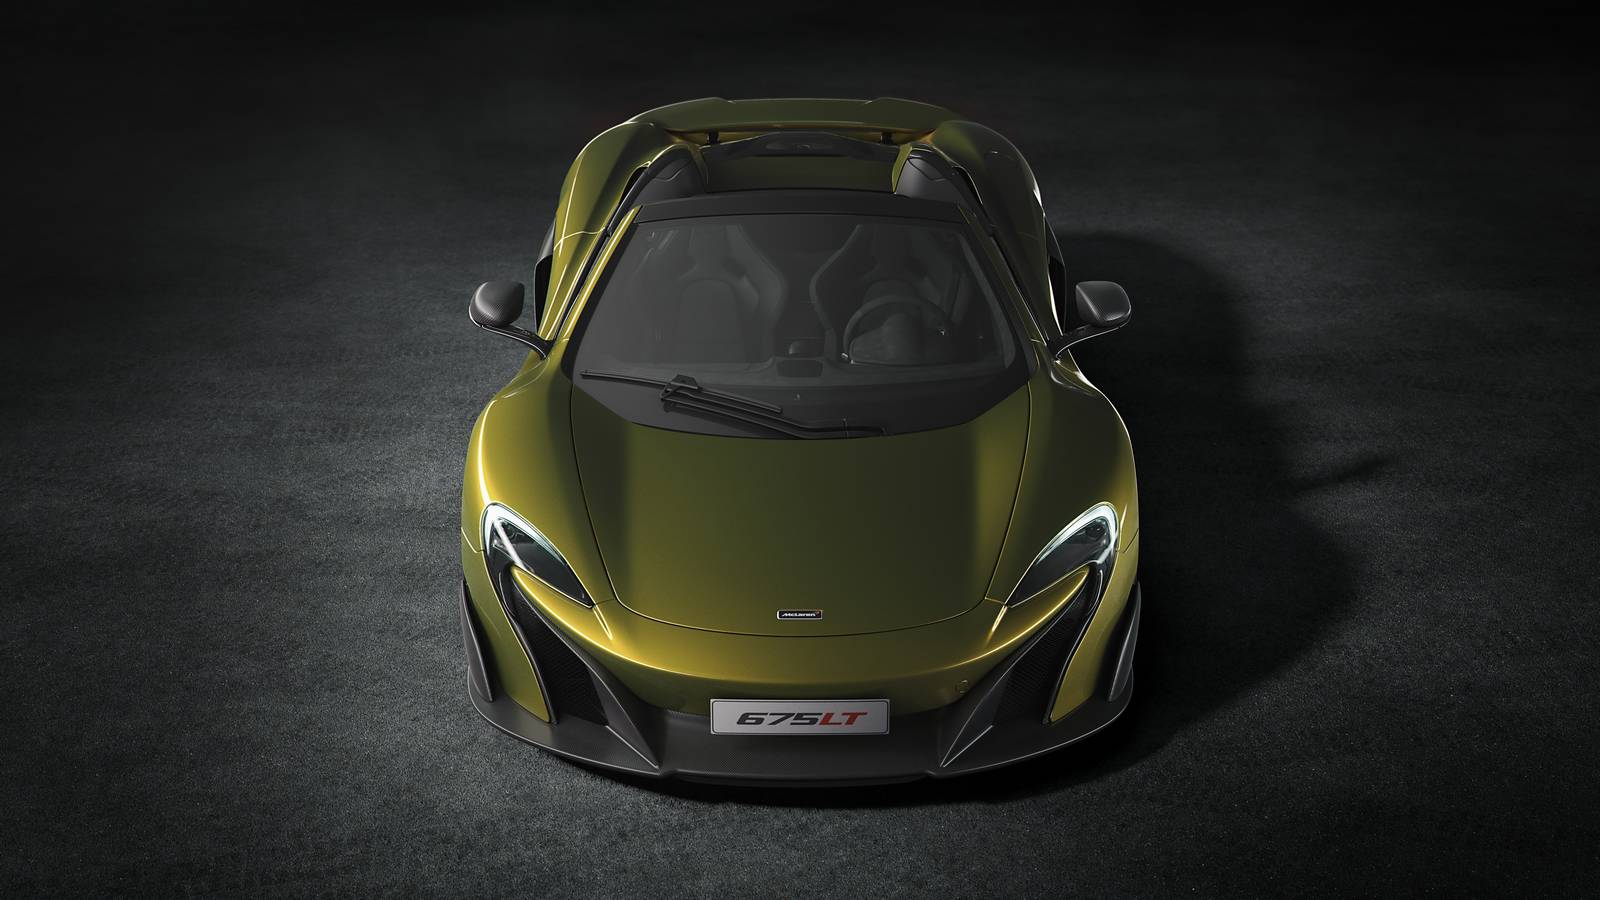 2016 mclaren 675lt spider front view wallpaper 48905